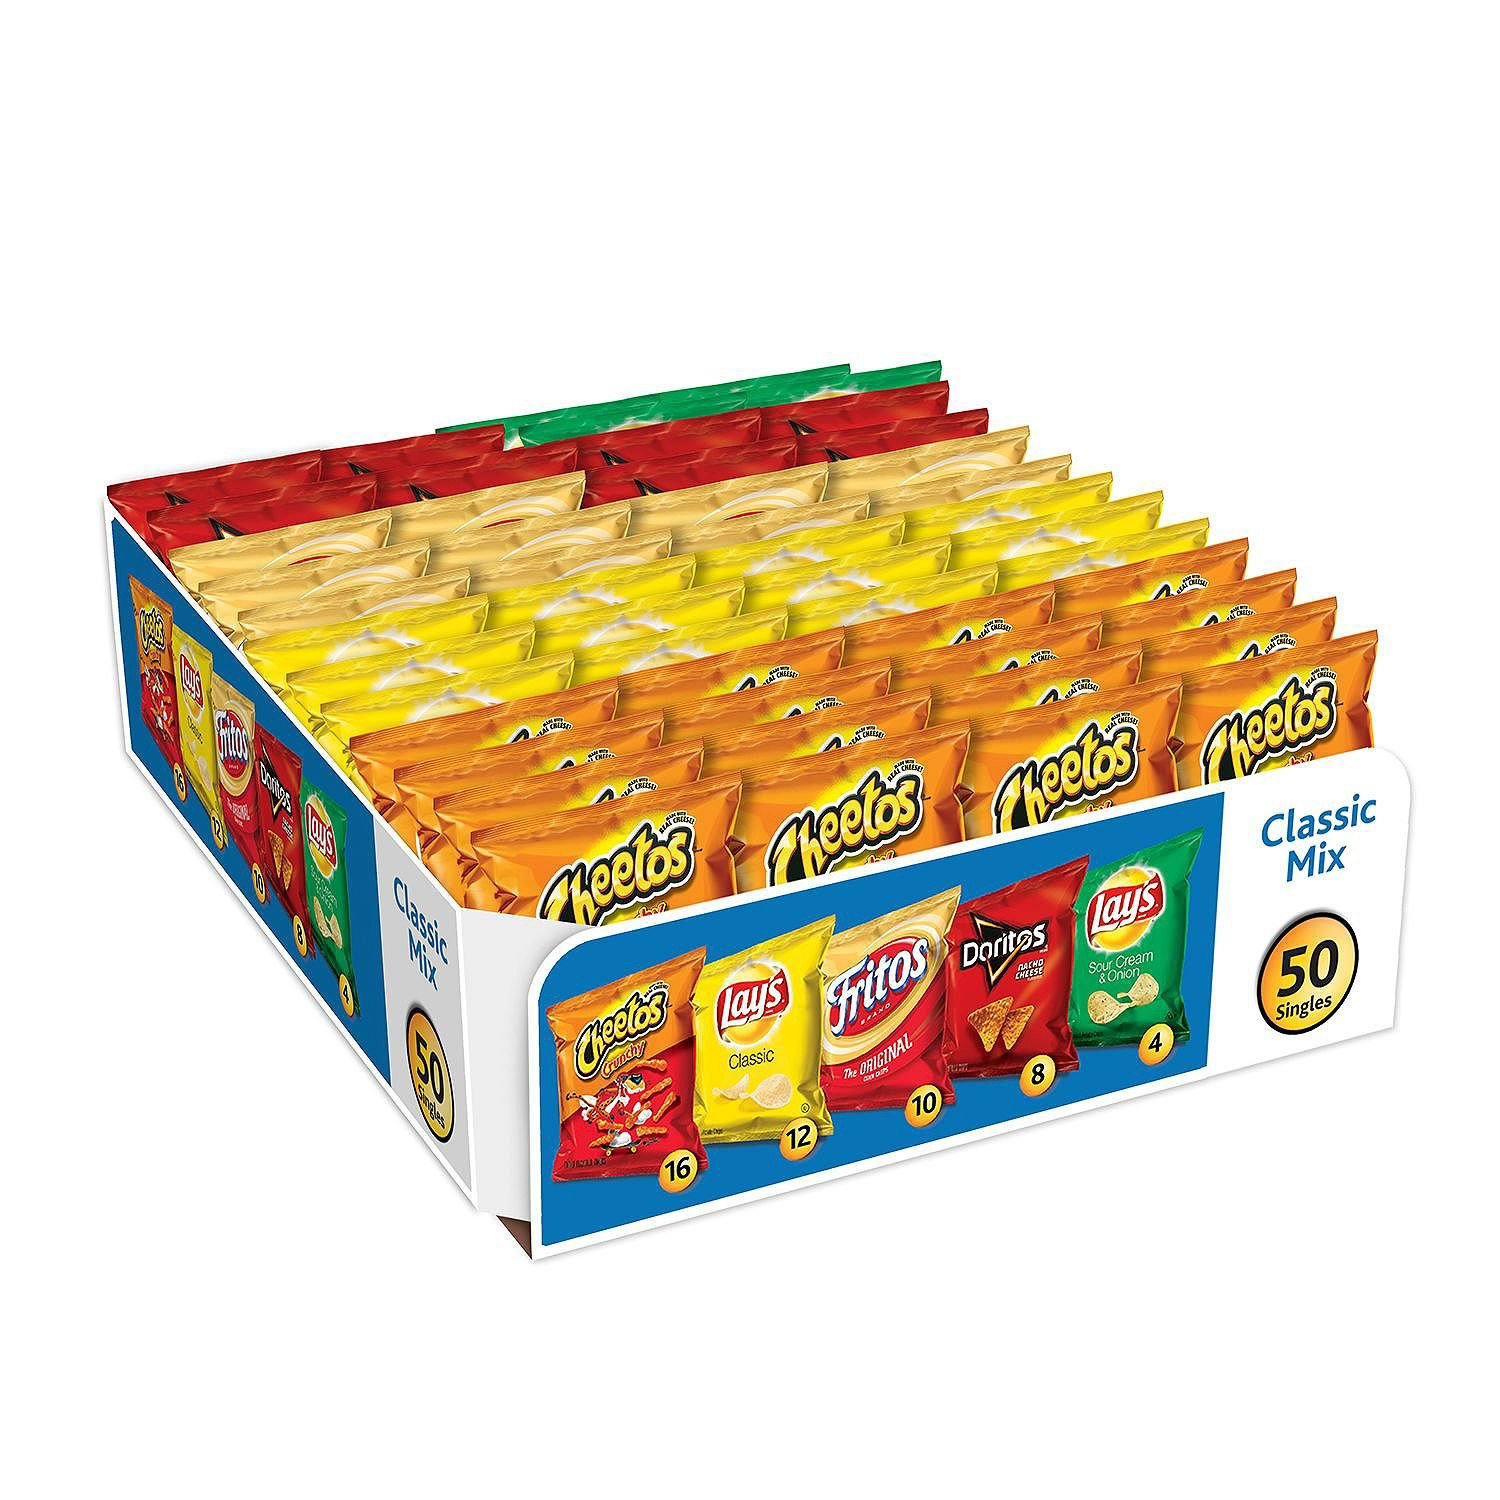 Frito-Lay Flavor Variety Pack, 50 Ounce by Frito-Lay